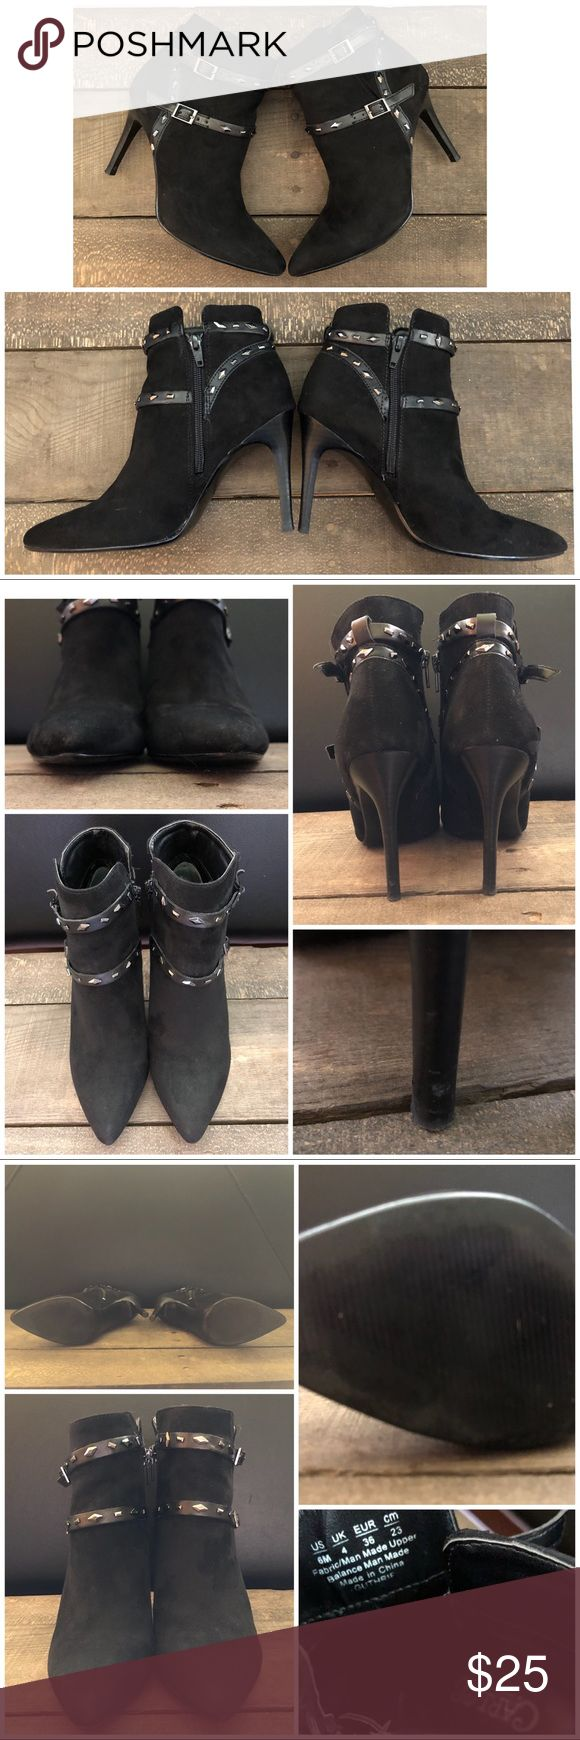 **Final price** Carlos Santana boots Women's Carlos Santana black suede like ankle boots with decorative ankle straps with buckles. Slit on outside and zipper on inside. GOOD USED condition. Some signs of wear (shown in pics). Slight scuffs on heels, otherwise great condition overall. No stains or tears. Carlos Santana Shoes Ankle Boots & Booties